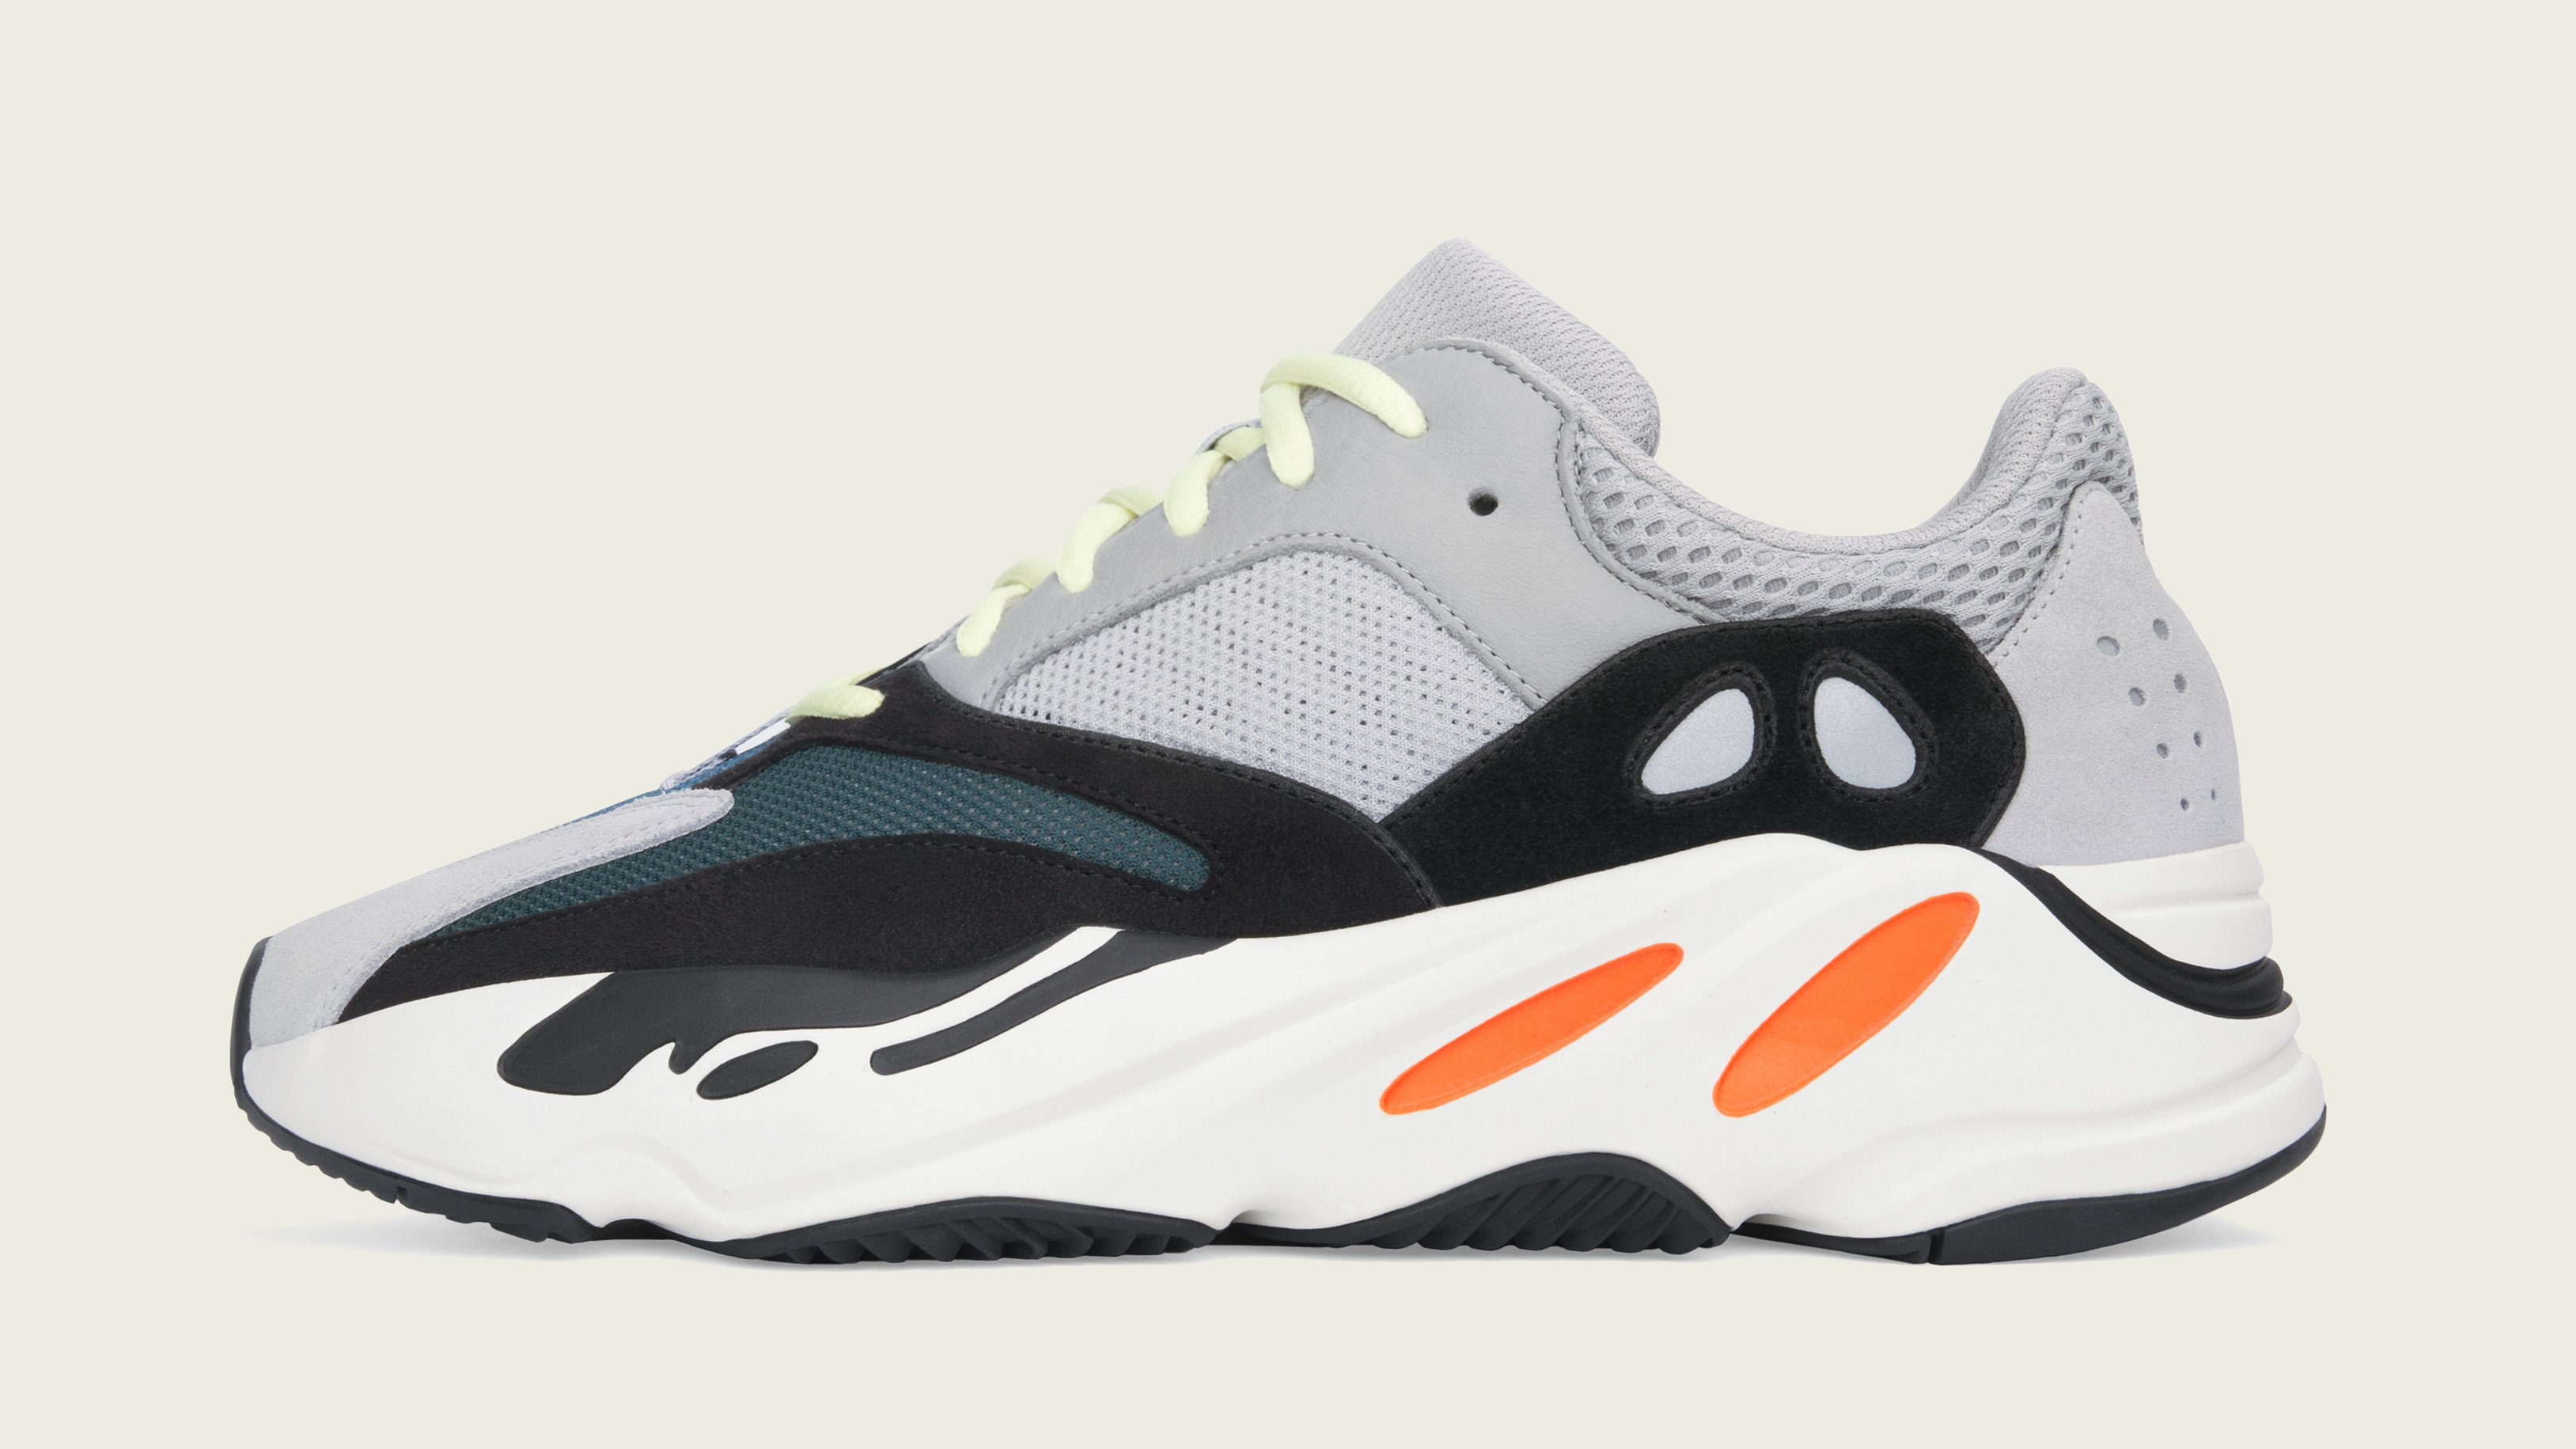 86262a38bf5e0 Adidas Yeezy Boost 700  Wave Runner  B75571 September Restock